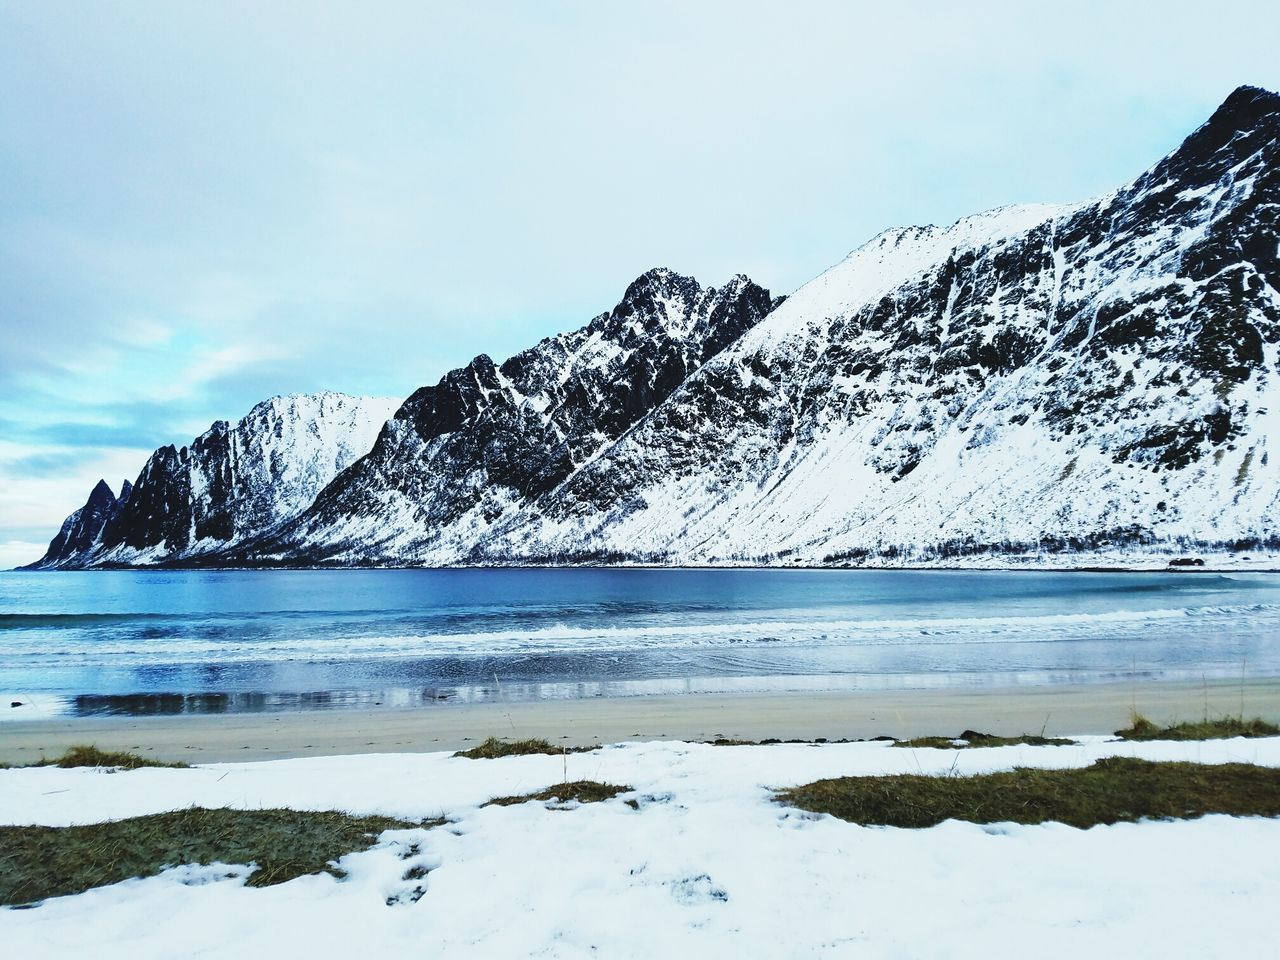 EyeEmNewHere Ersfjorden Norway Camping Beach Wintertime Get Outdoors Get Lost Beautiful Nature Explore Wanderlust Travel Water Travel Photography The Great Outdoors - 2017 EyeEm Awards Your Ticket To Europe